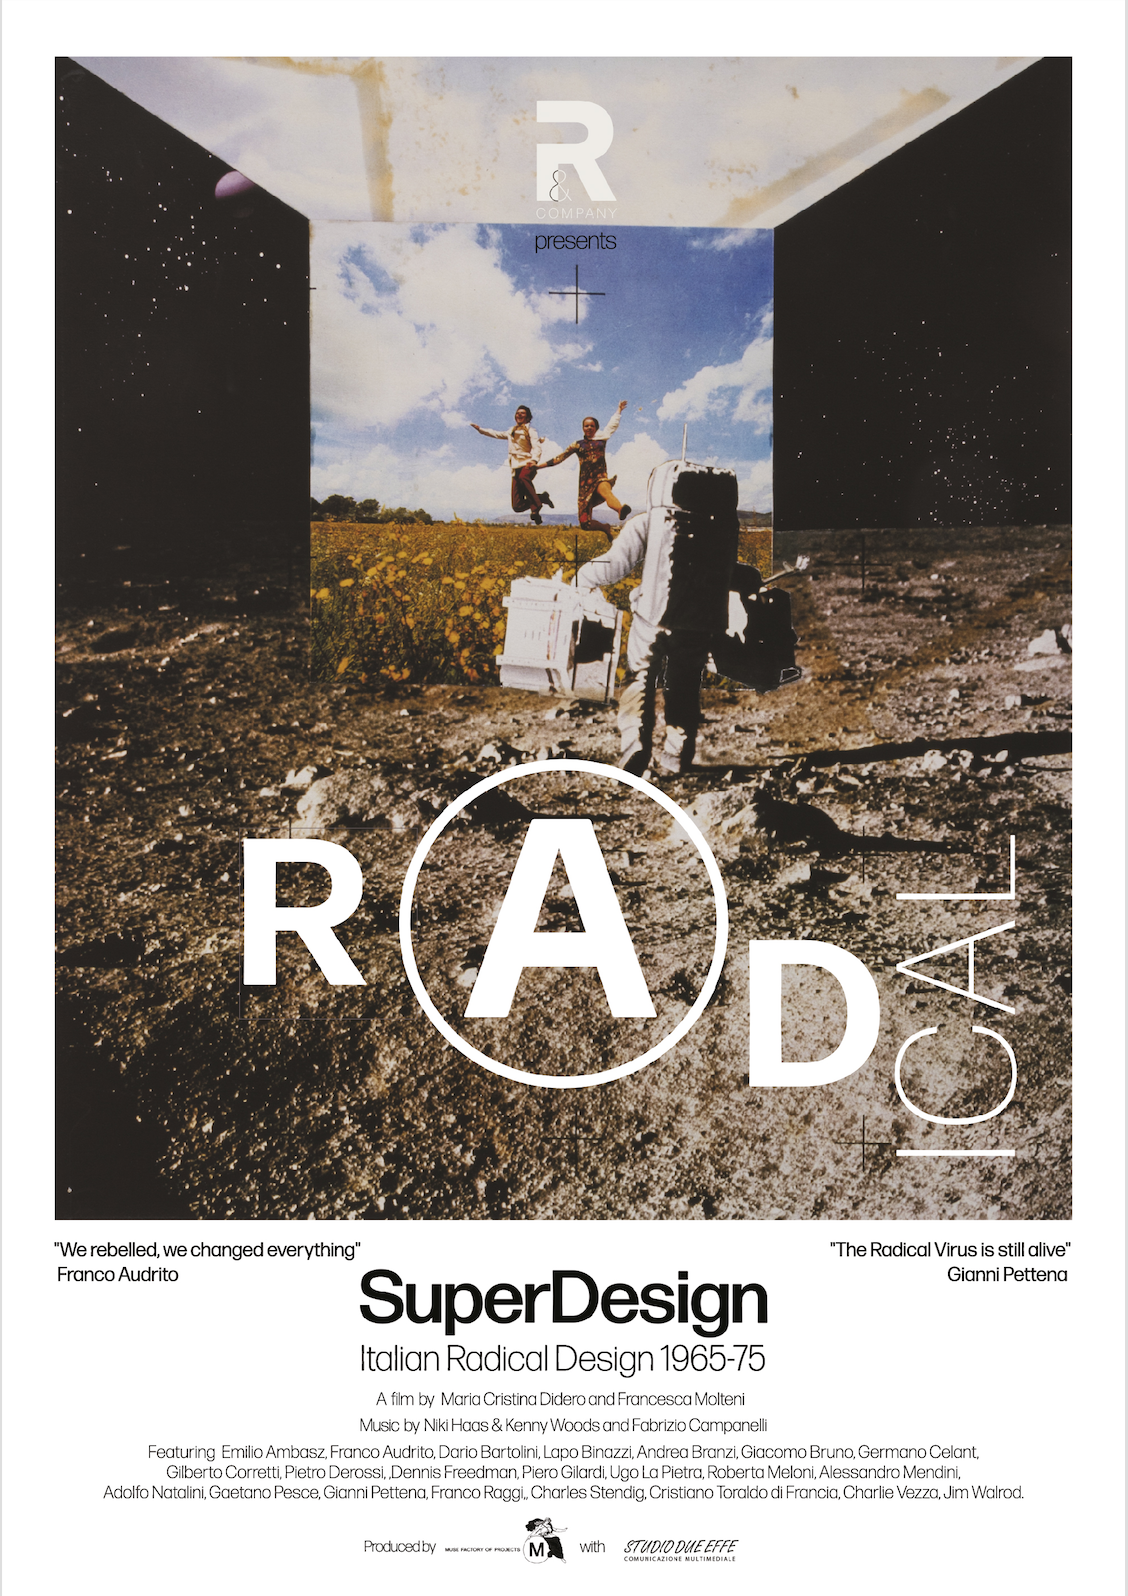 Super Design - Italian Radical Design 1965-75